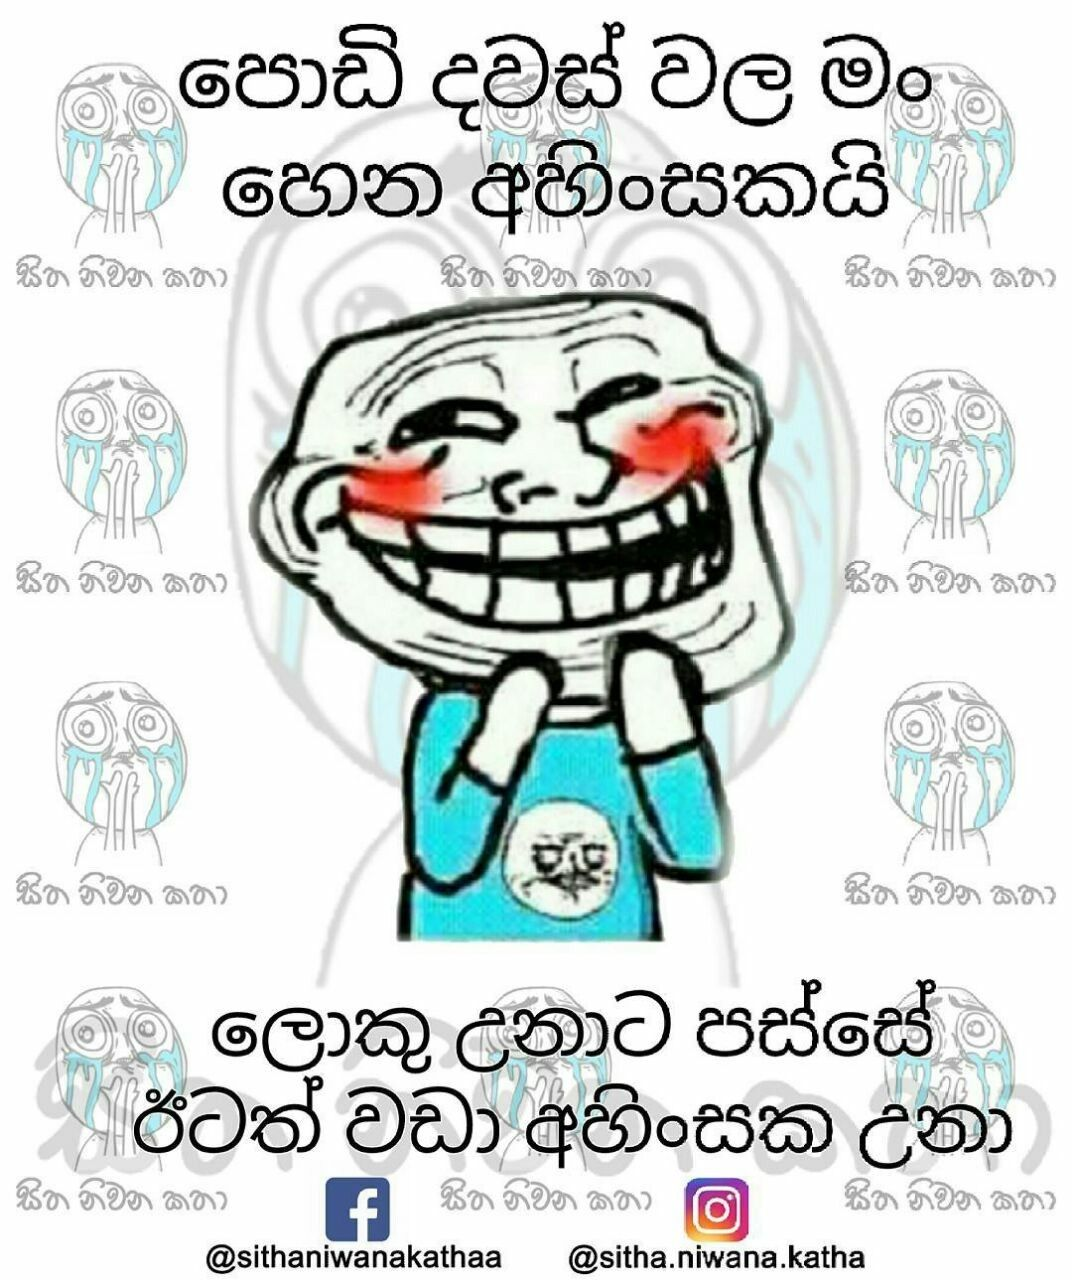 Pin By Fathi Nuuh On Sinhala Jokes Funny Images Funny Jokes Quotes